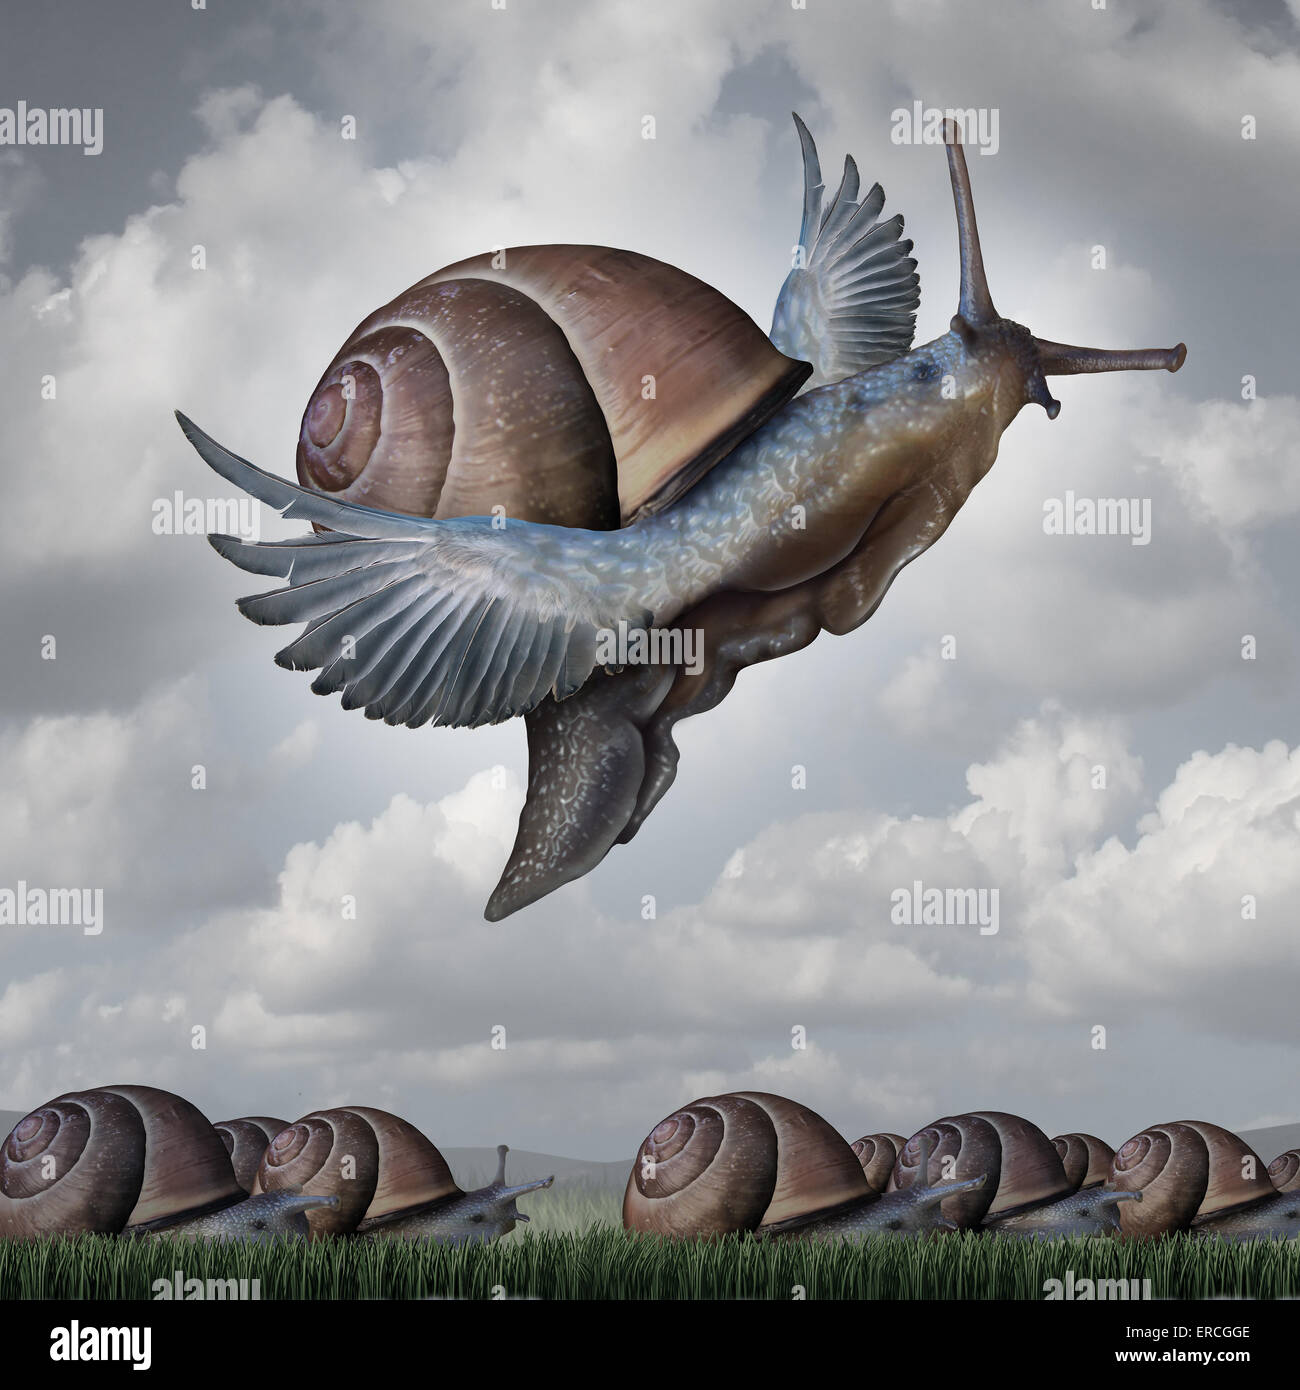 Advantage concept as a business metaphor with a surreal crowd of snails crawling slowly on the ground contrasted - Stock Image